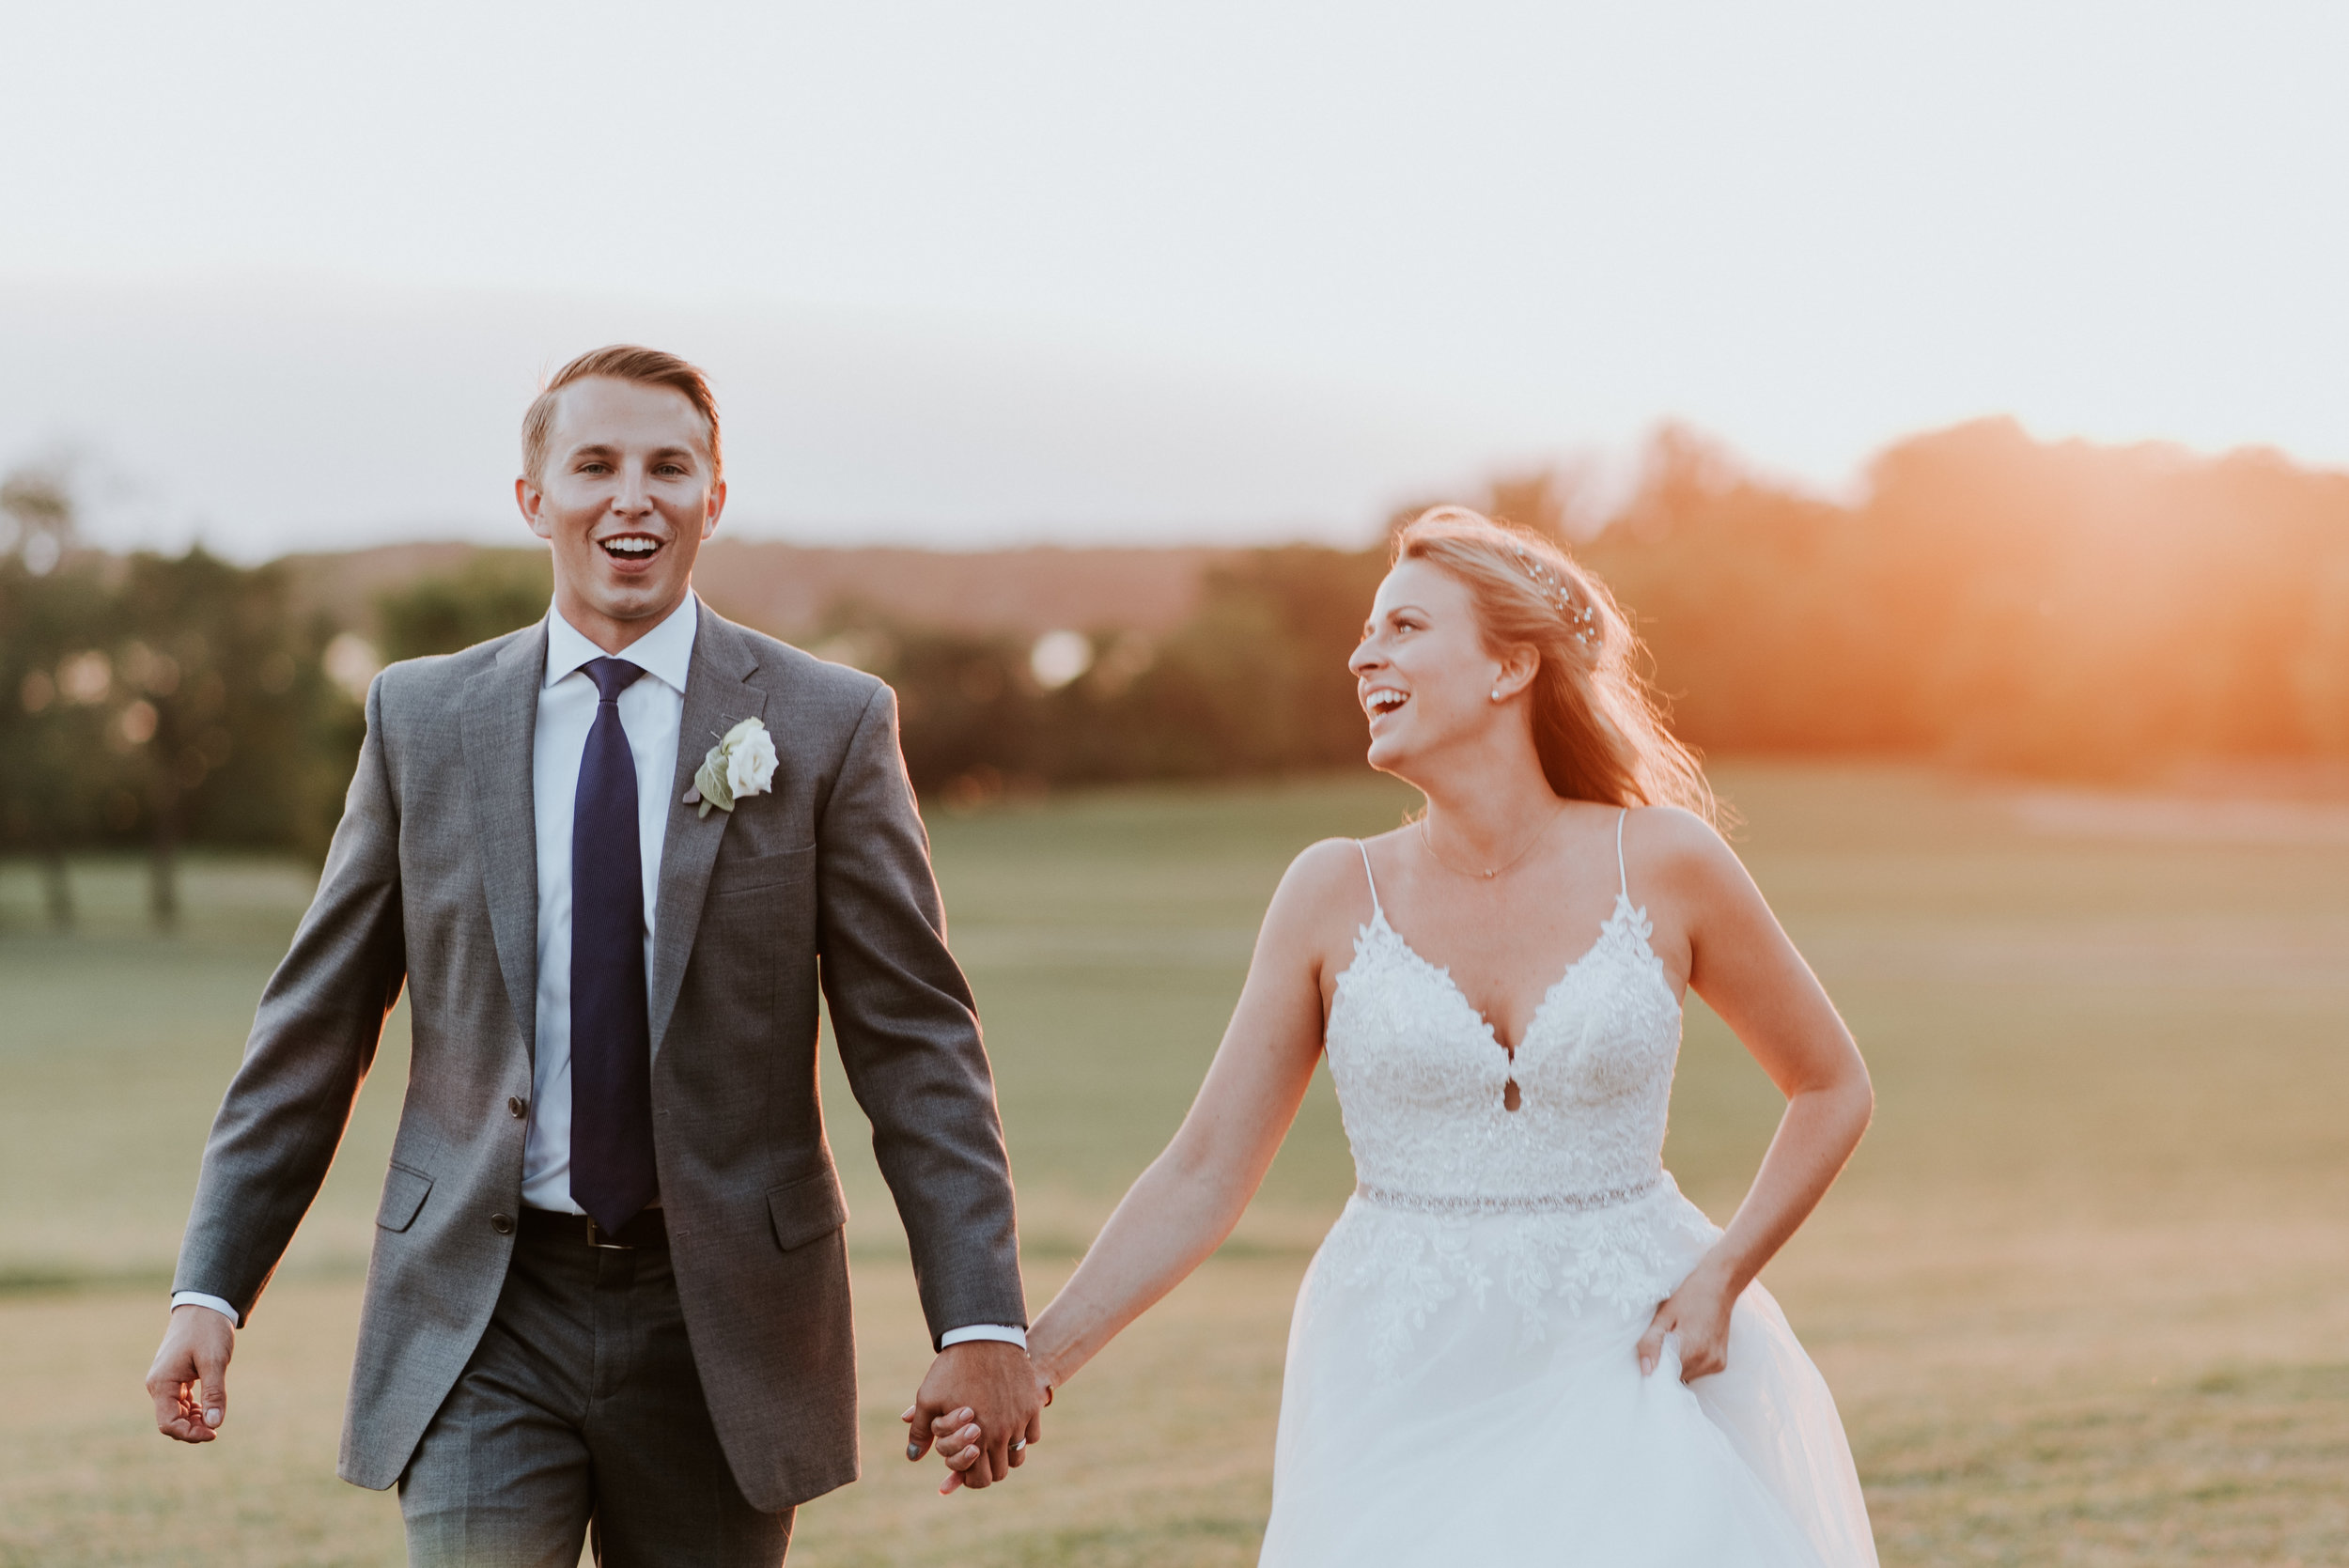 Rustic Oyster Themed Eastern Shore Maryland Outdoor Wedding by East Made Event Company Wedding Planner and Bekah Kay Creative1081.jpg